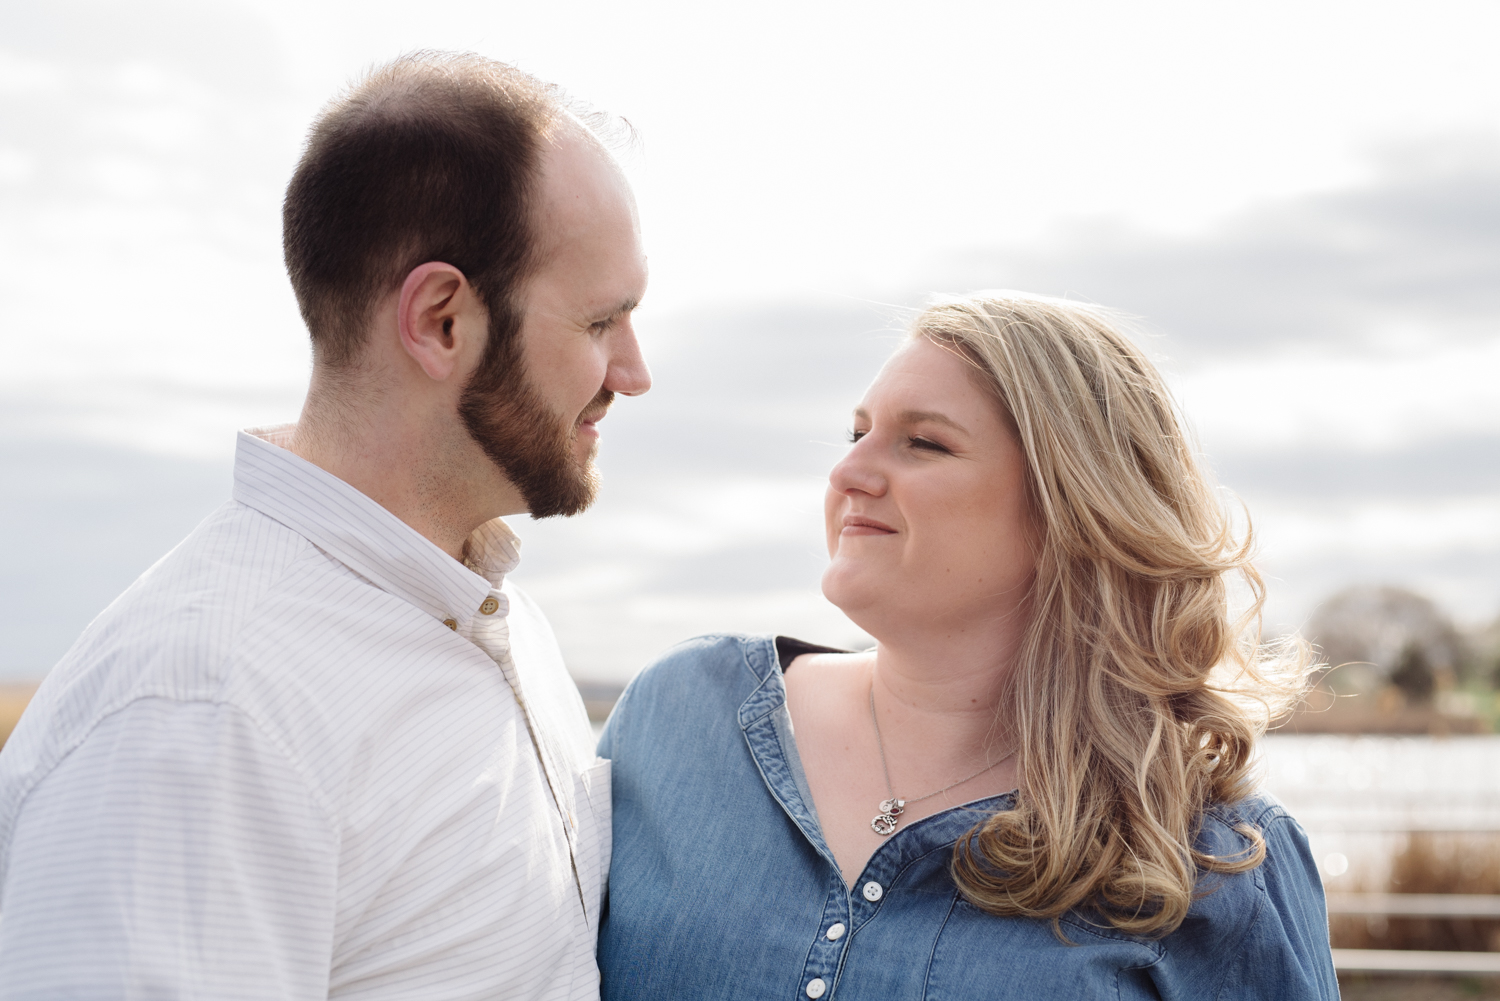 Matt+Melissa- Meadowlands Environmental Center Engagement Session- New Jersey- Olivia Christina Photo-35.JPG